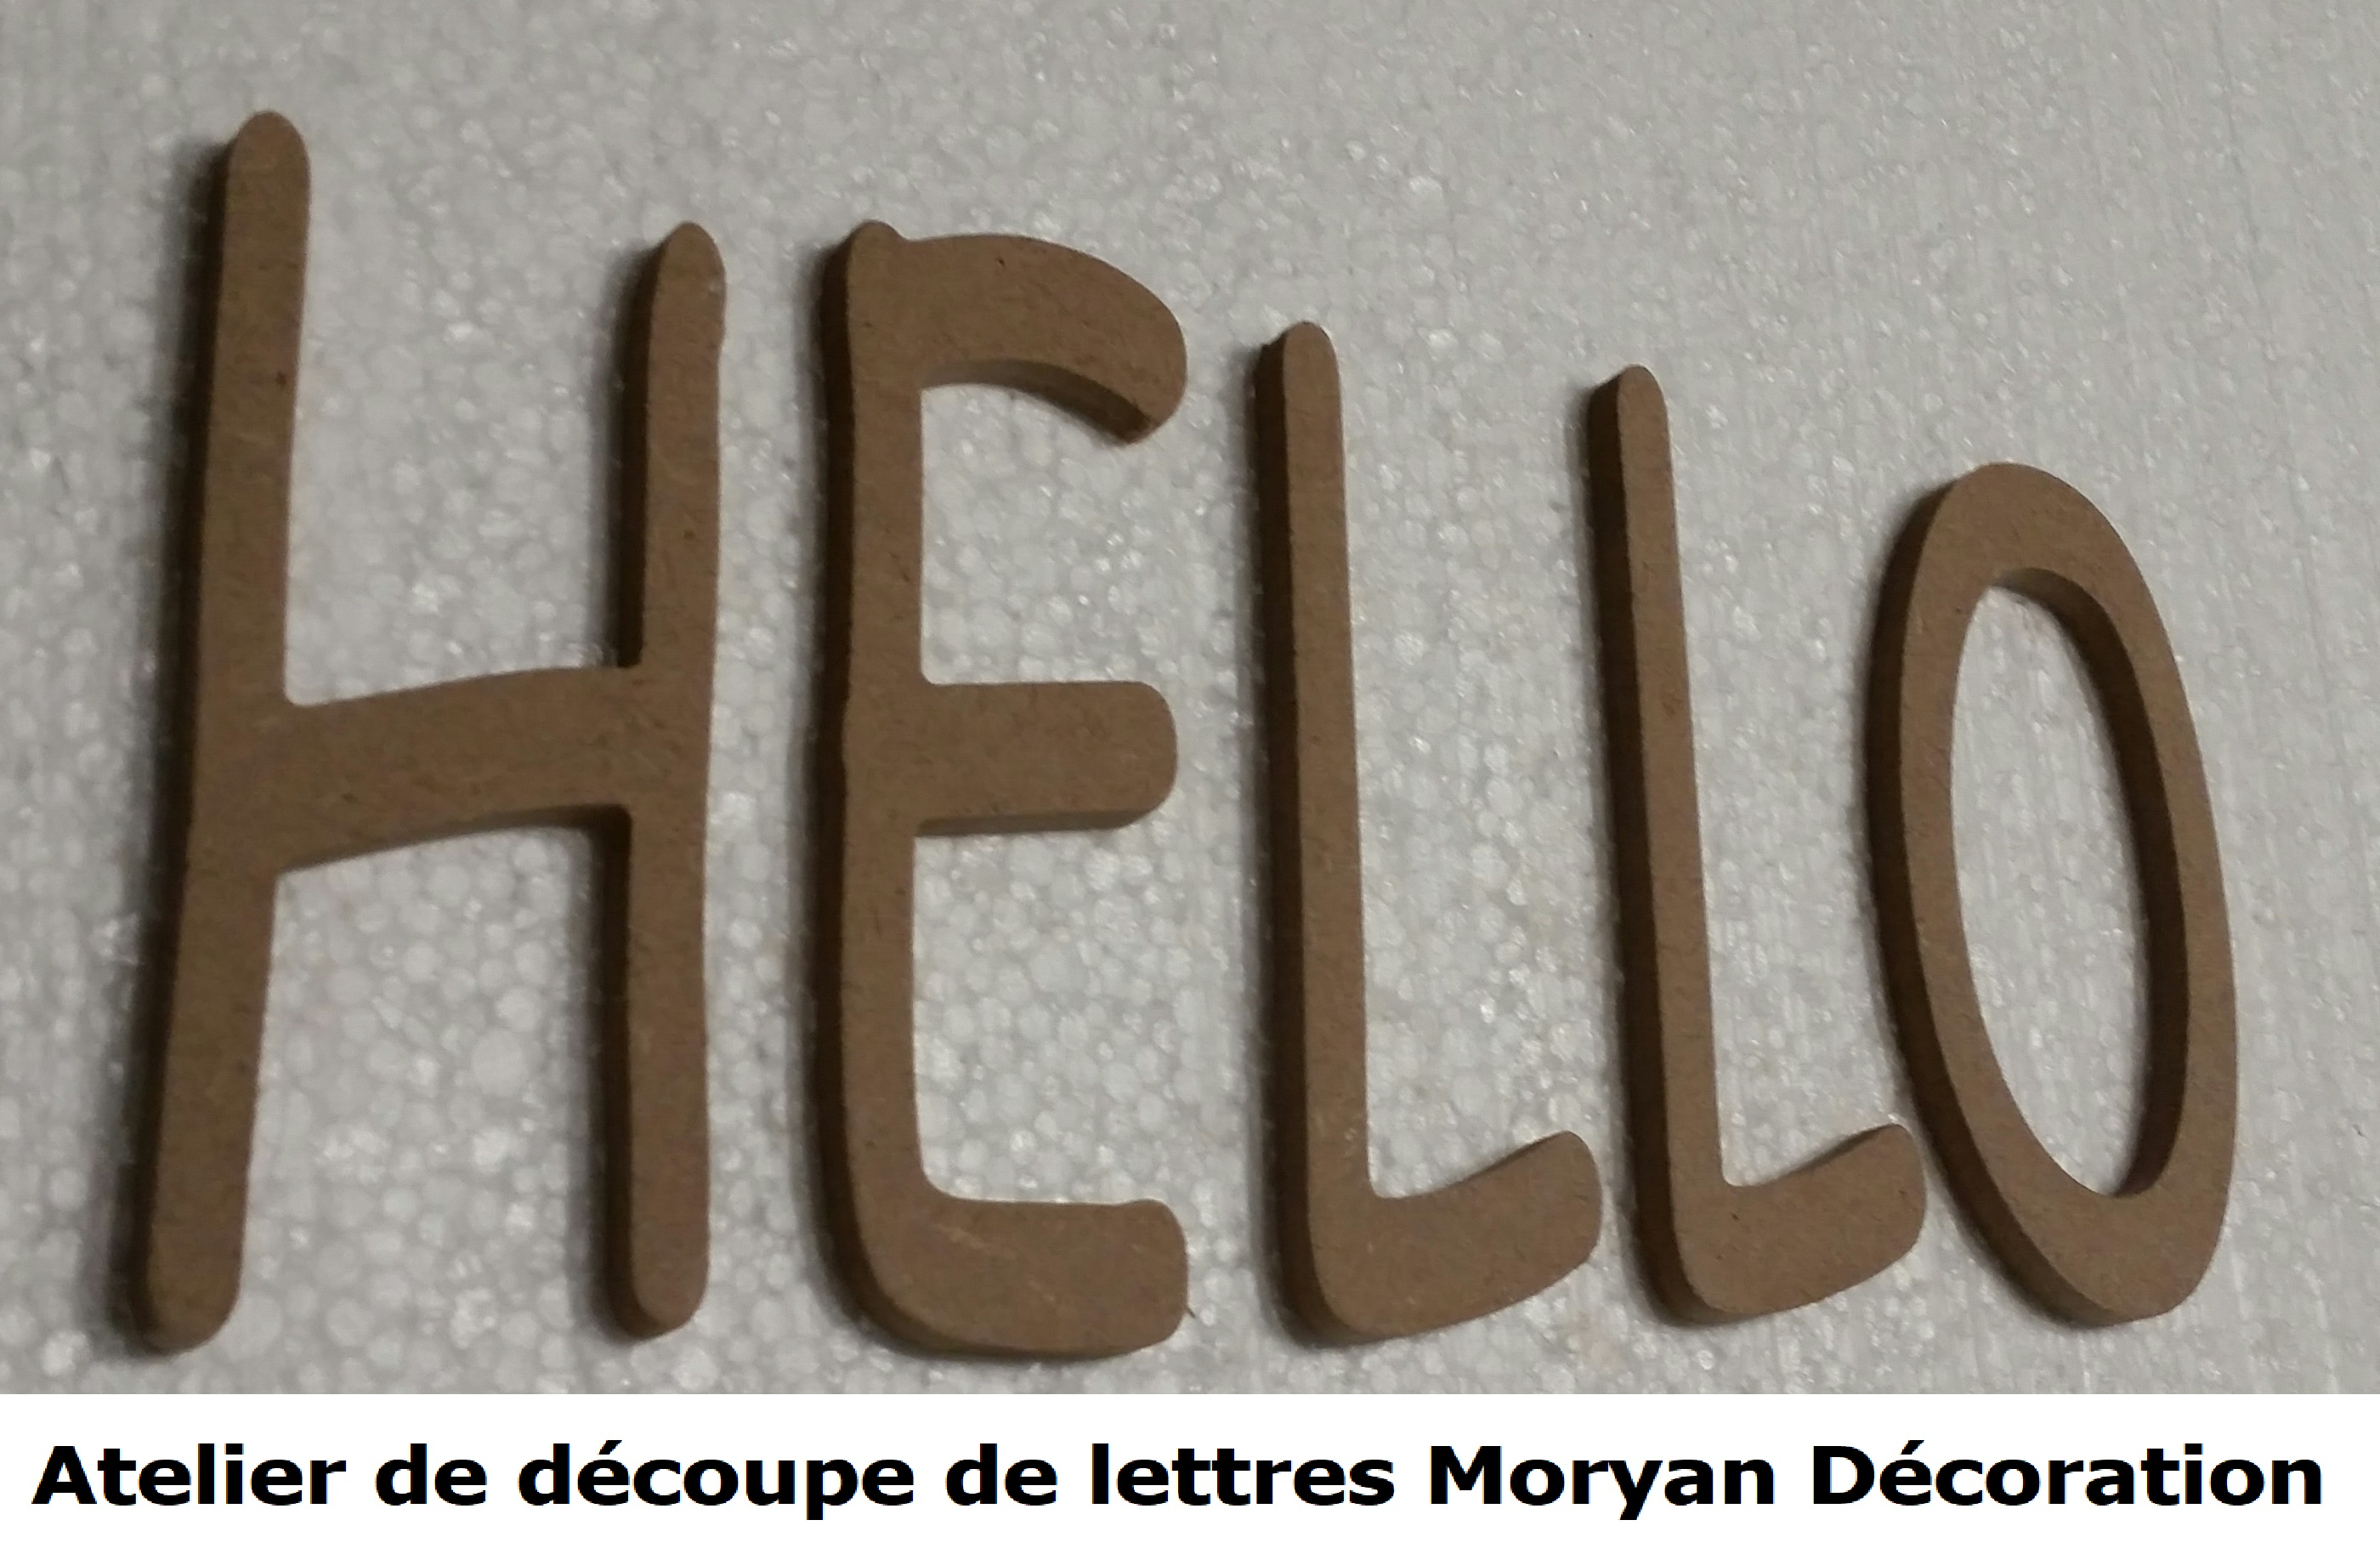 Lettre decorative HELLO